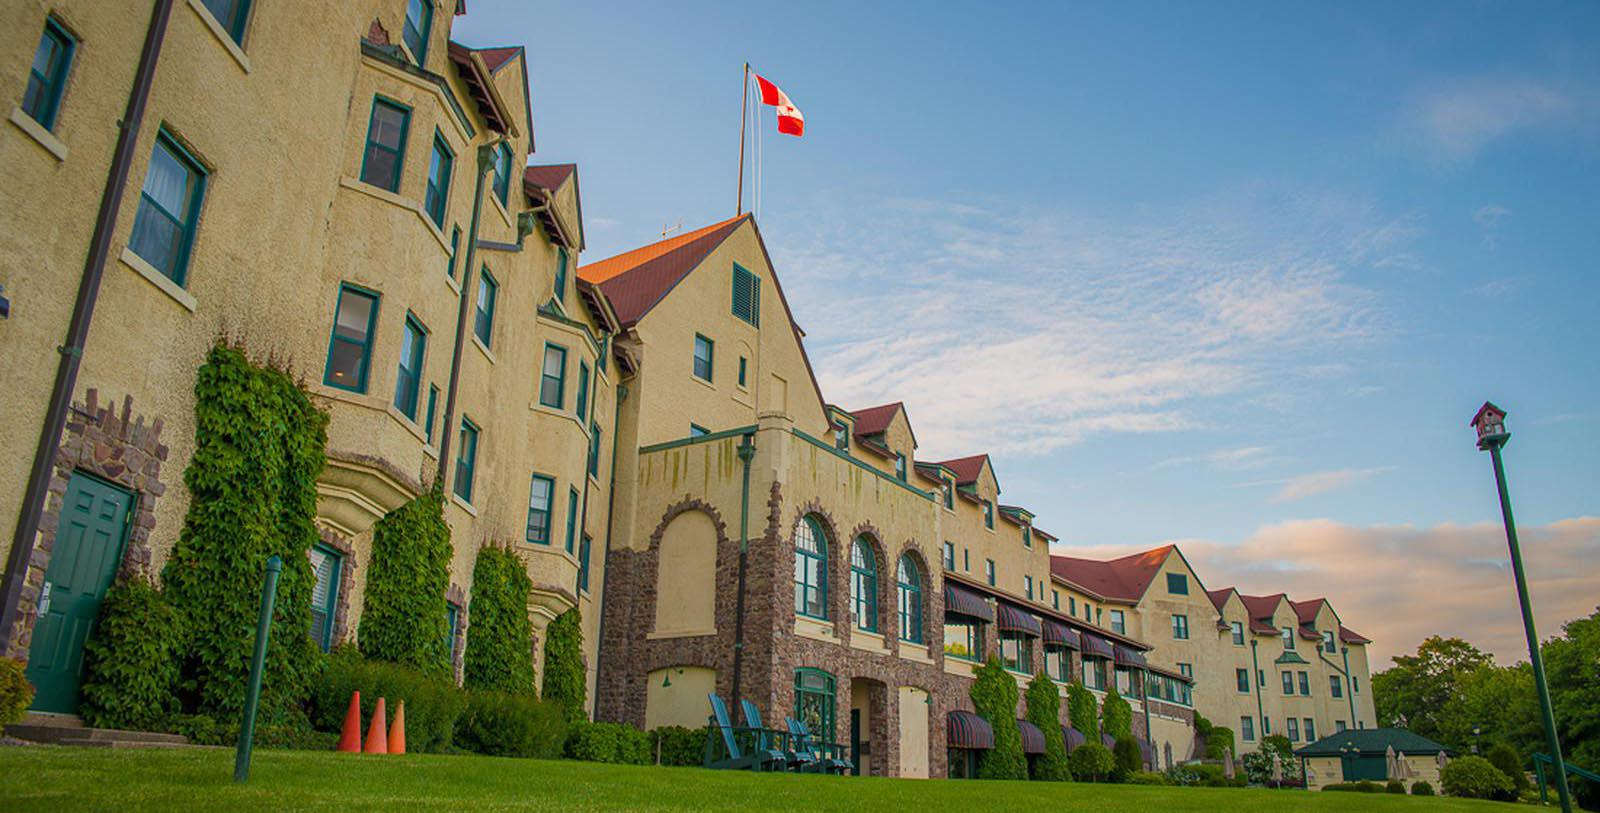 Image of hotel exterior Digby Pines Golf Resort and Spa, 1905, Member of Historic Hotels Worldwide, in Digby, Nova Scotia, Canada, Special Offers, Discounted Rates, Families, Romantic Escape, Honeymoons, Anniversaries, Reunions